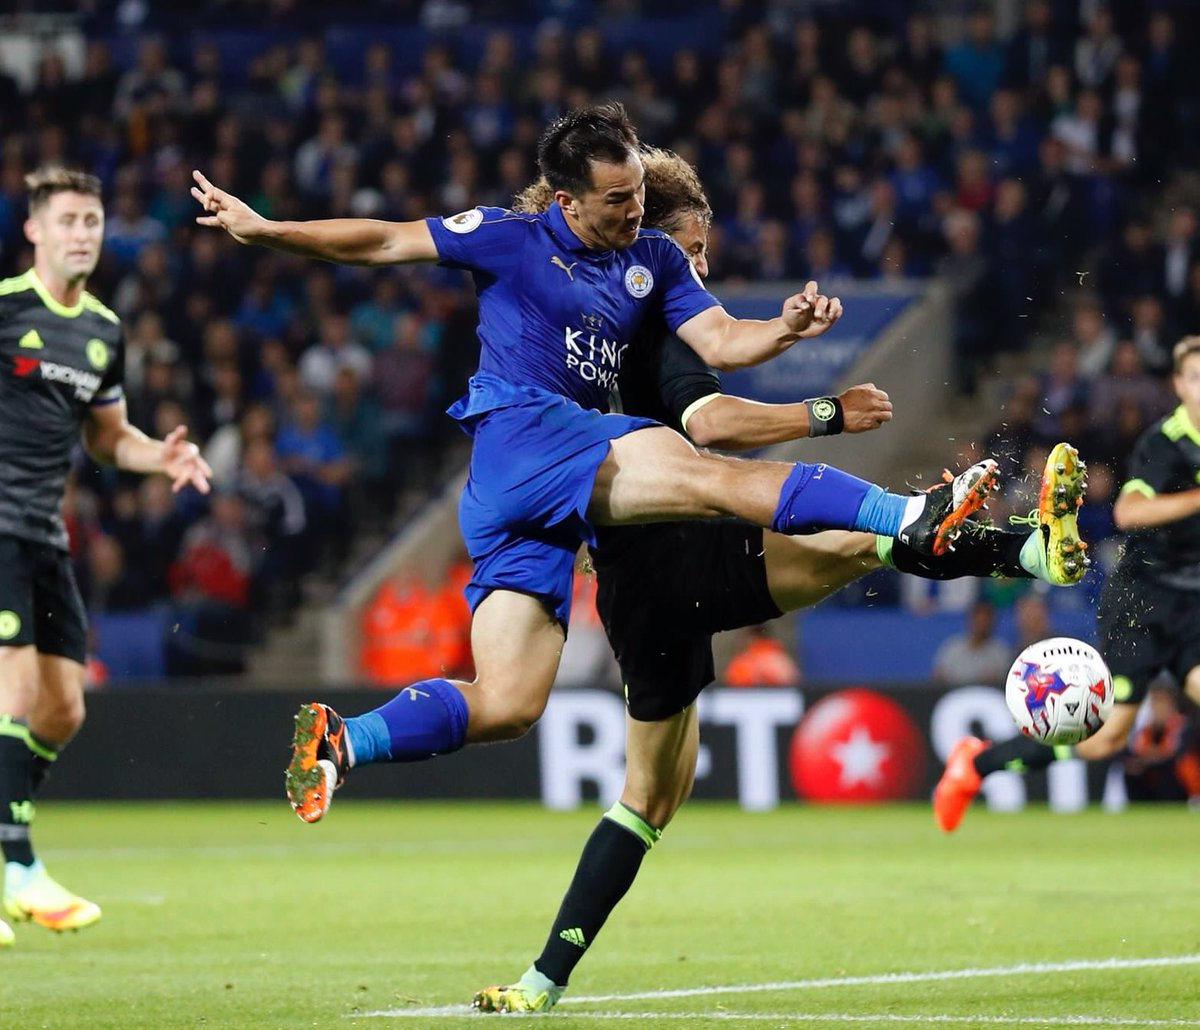 Okazaki has scored his first ever brace for Leicester City after failing to score in his previous 13 games